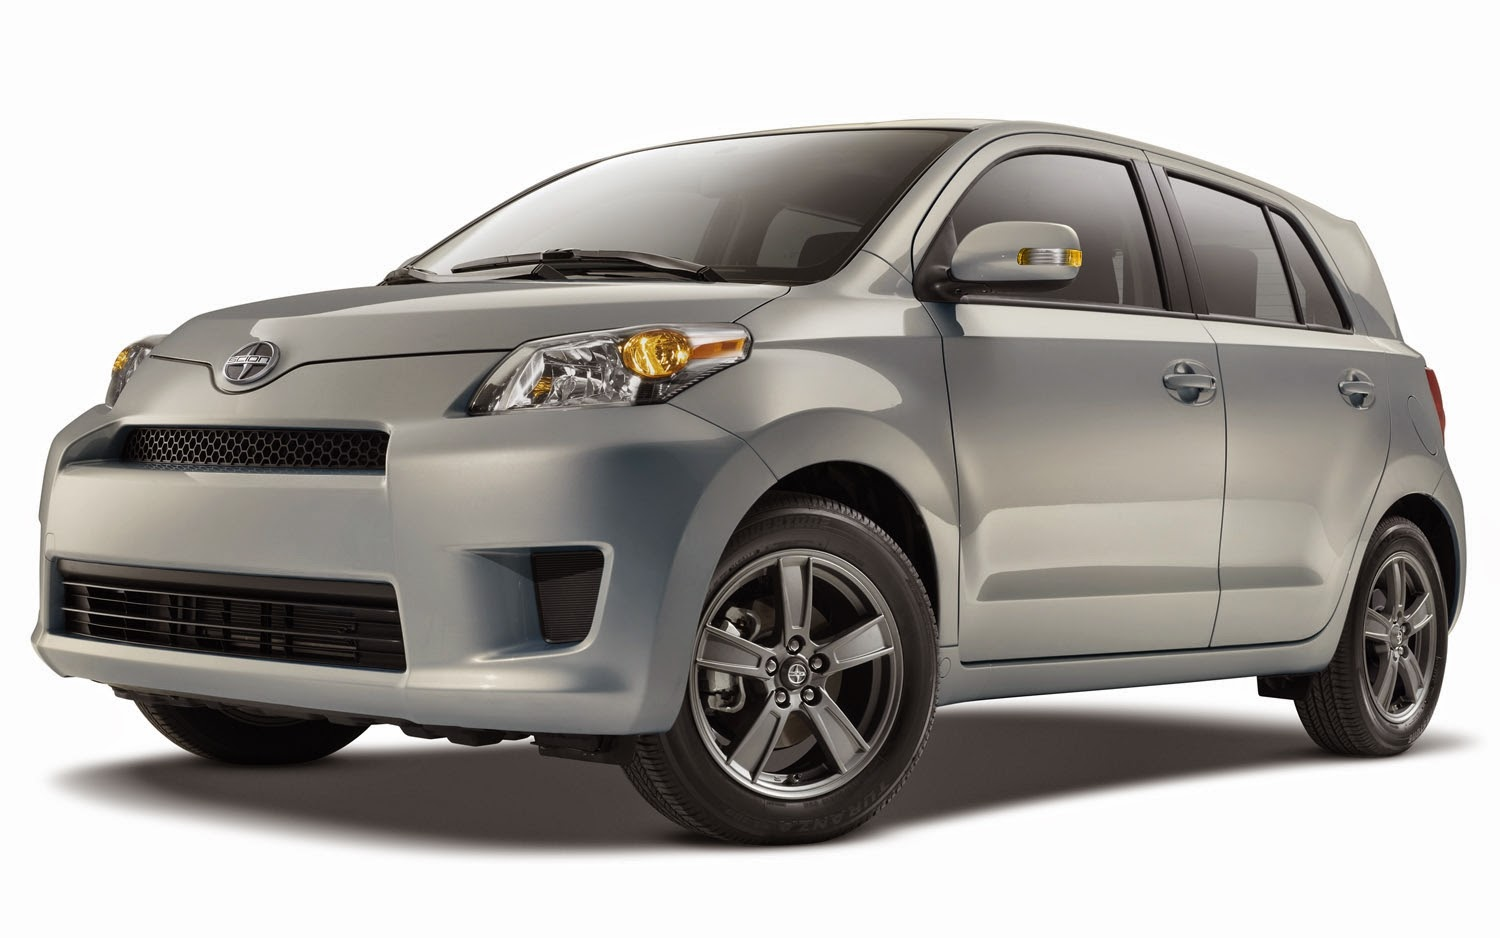 2013 Scion xD Series 10